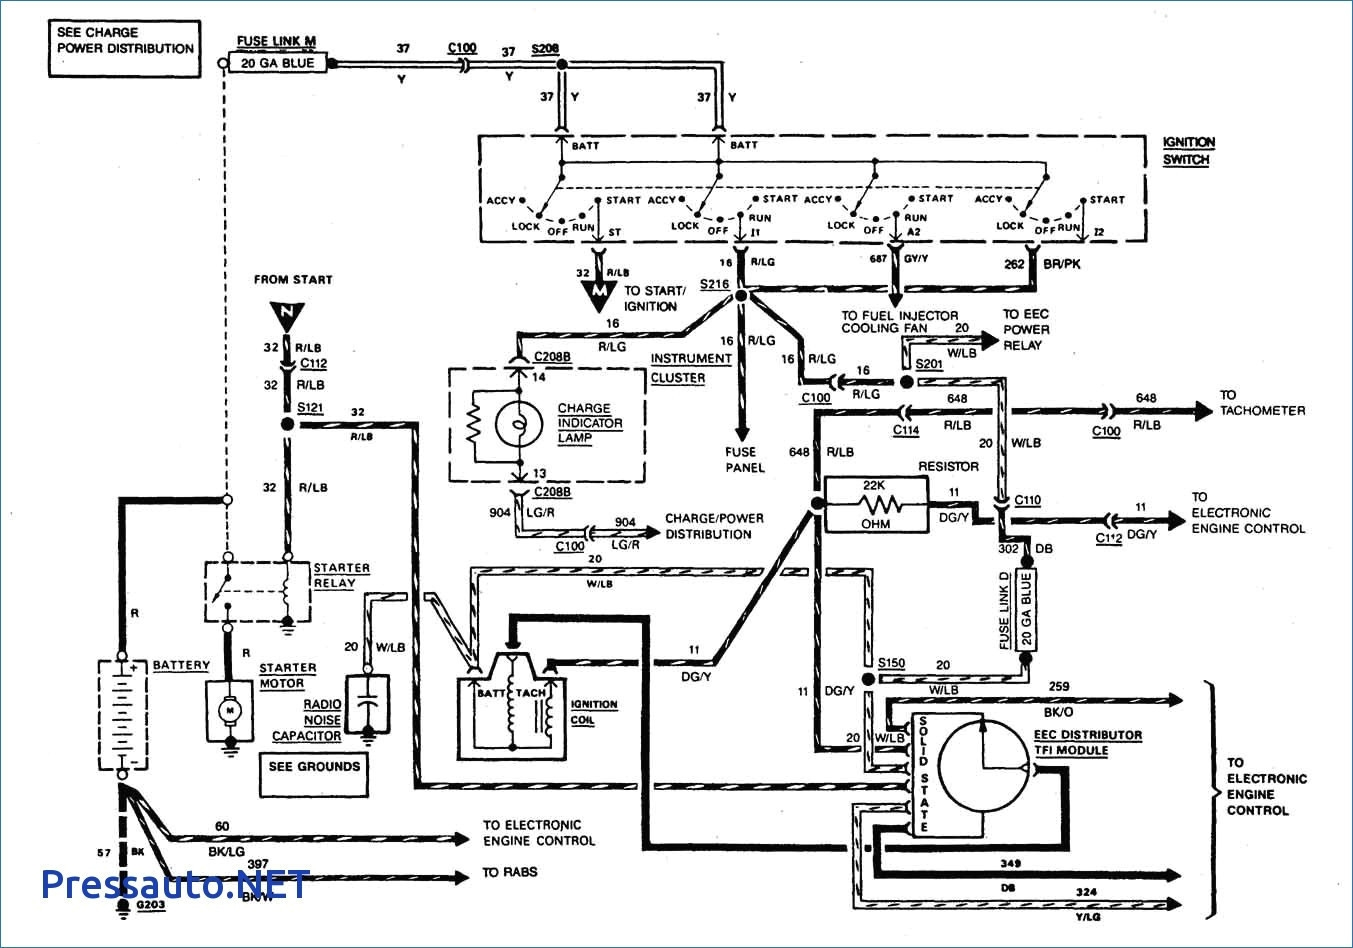 1998 Ford F 250 Fuse Box Diagram. Ford. Wiring Diagram Images